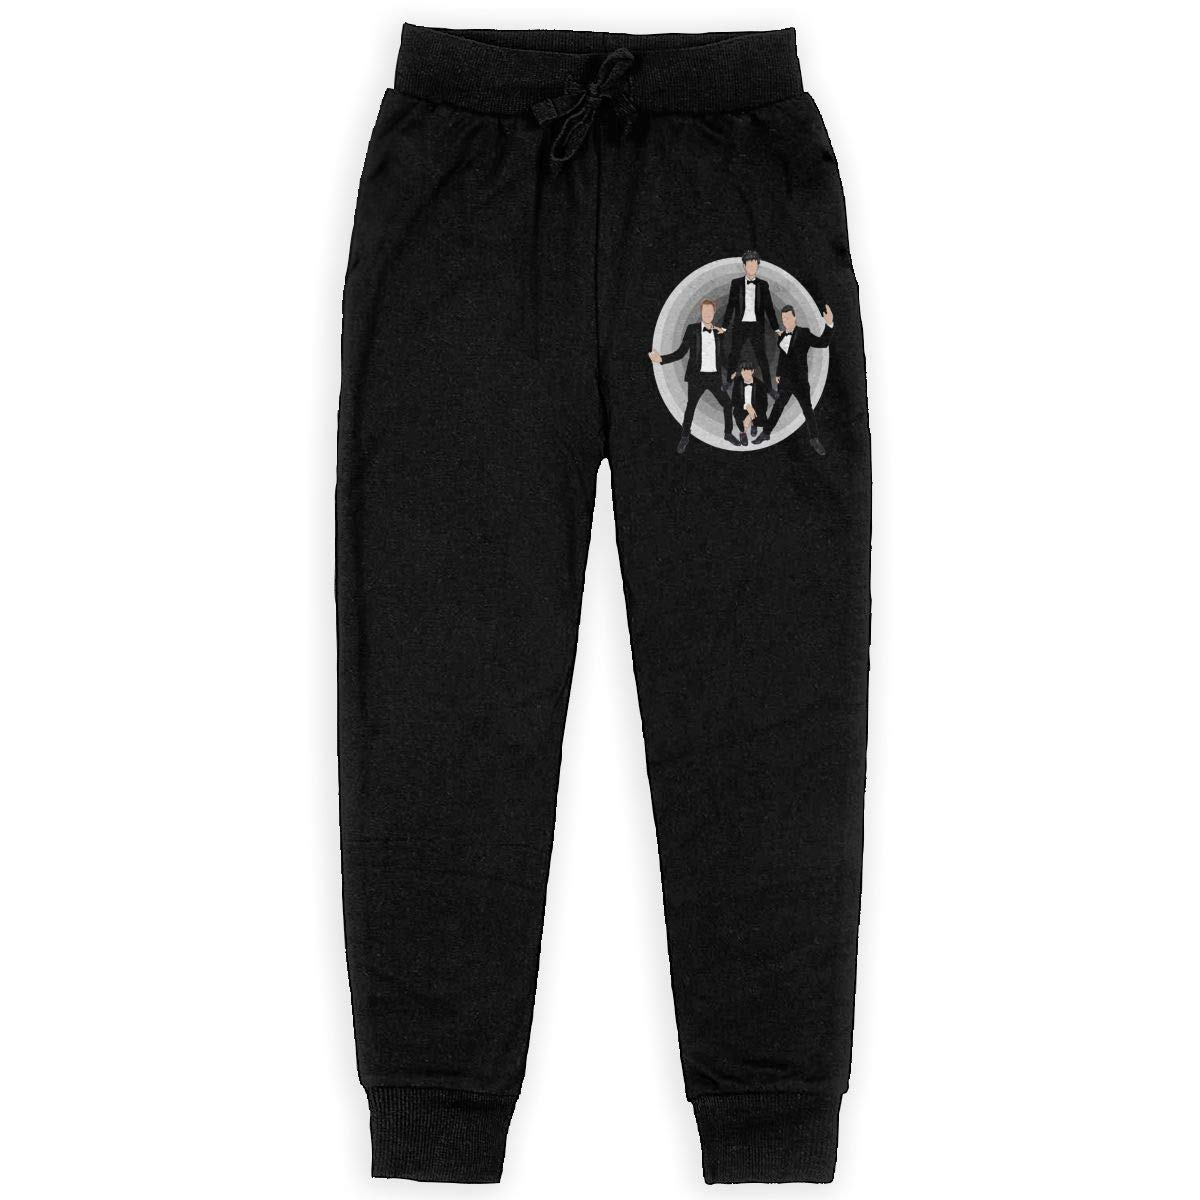 Dobre Brothers Boys Sweatpants Unisex Kids Casual Long Pants Sport Jogger Pants